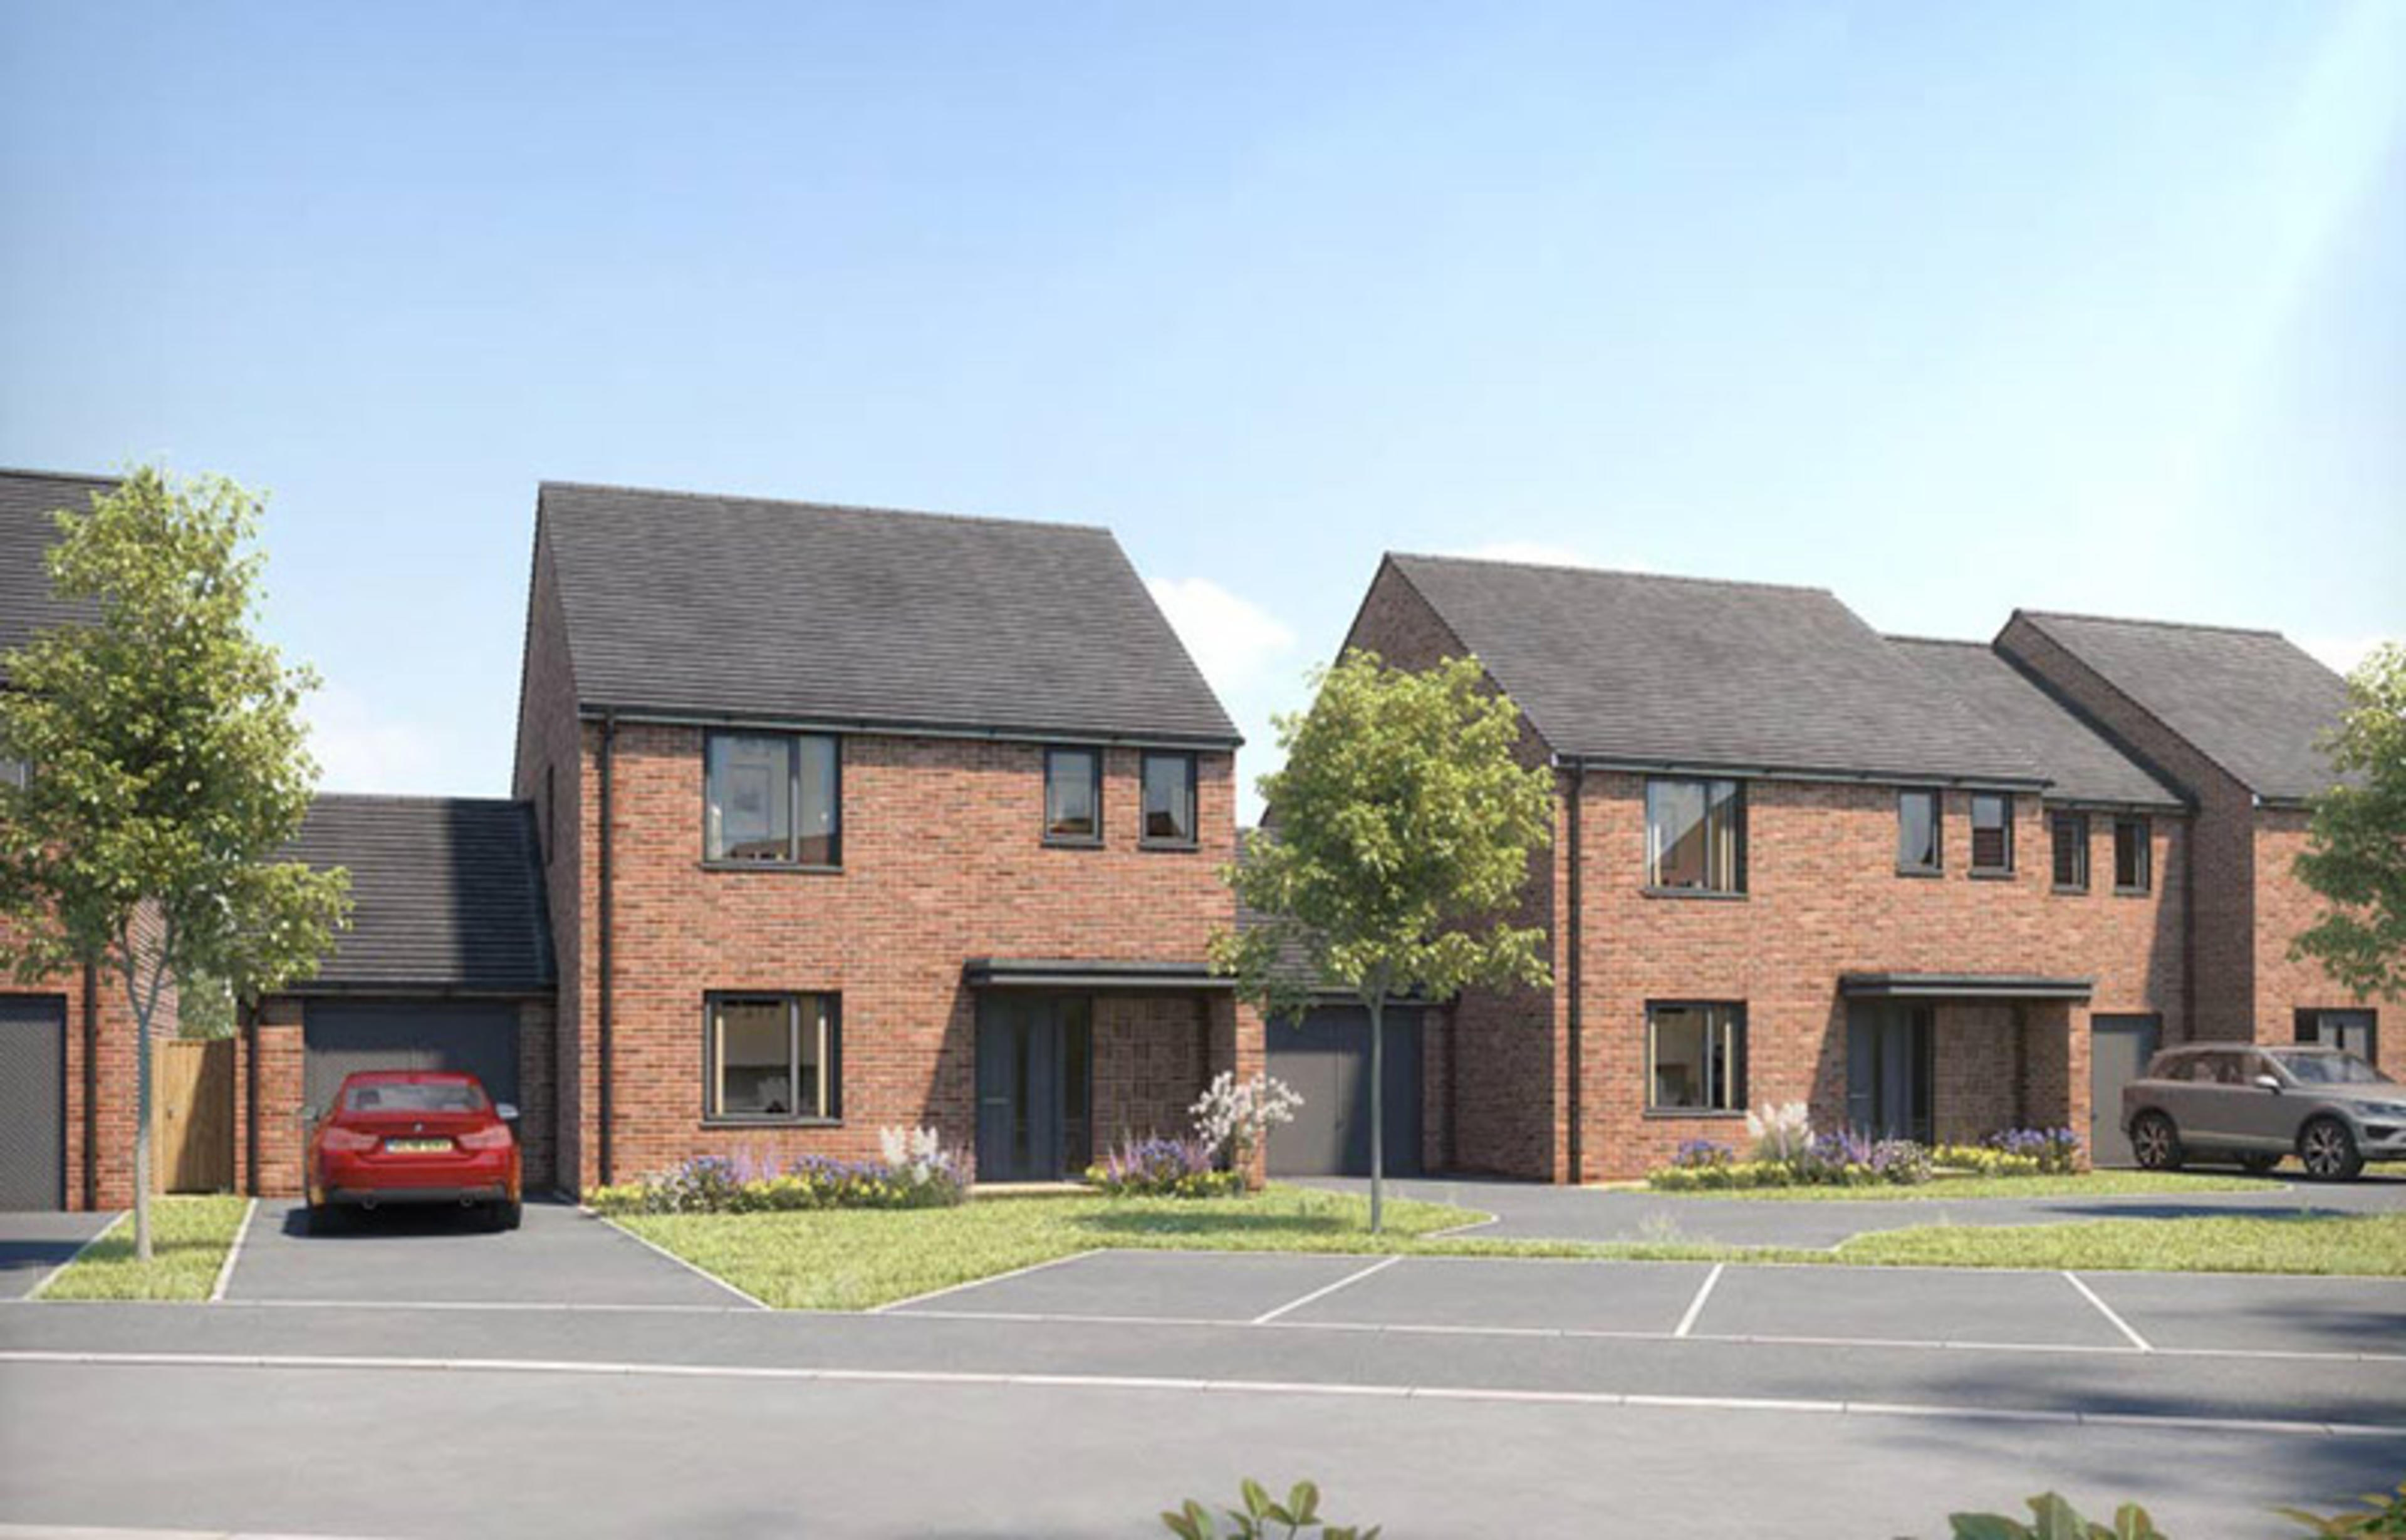 CGI of new-build detached homes with garages and parking at Ellison Grove, Hebburn